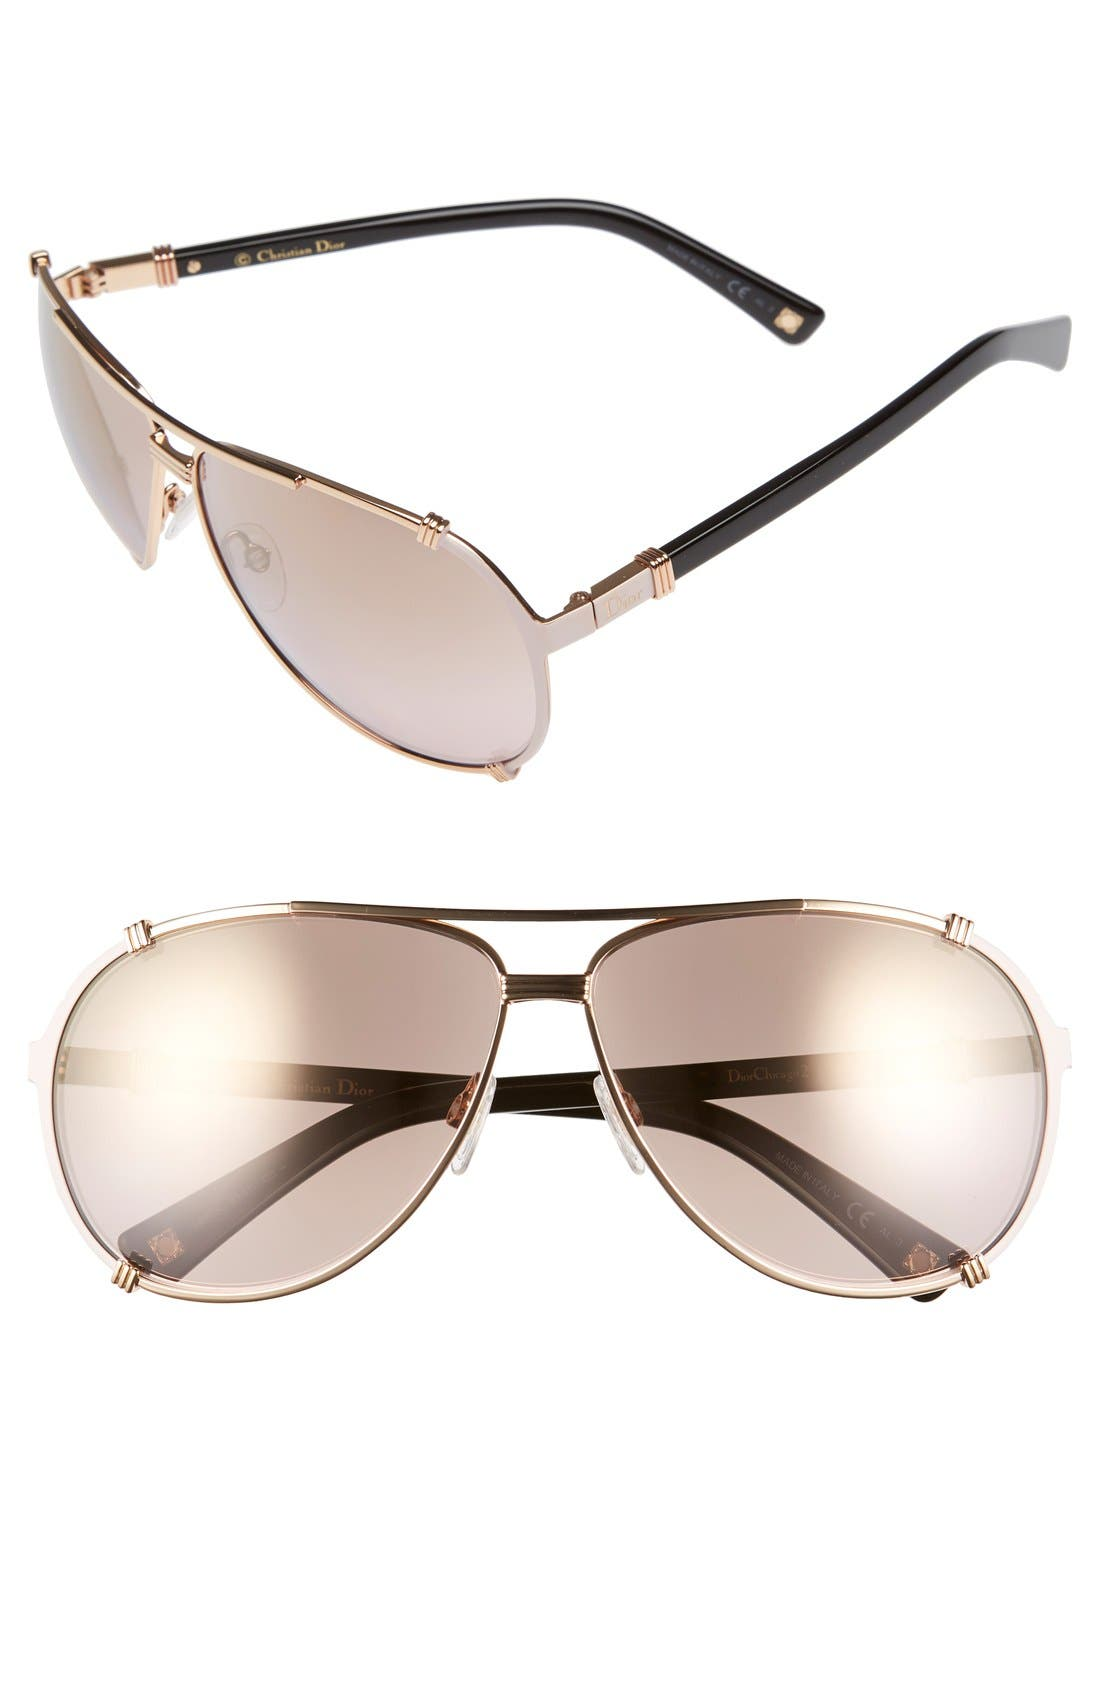 Alternate Image 1 Selected - Dior 'Chicago' 63mm Metal Aviator Sunglasses